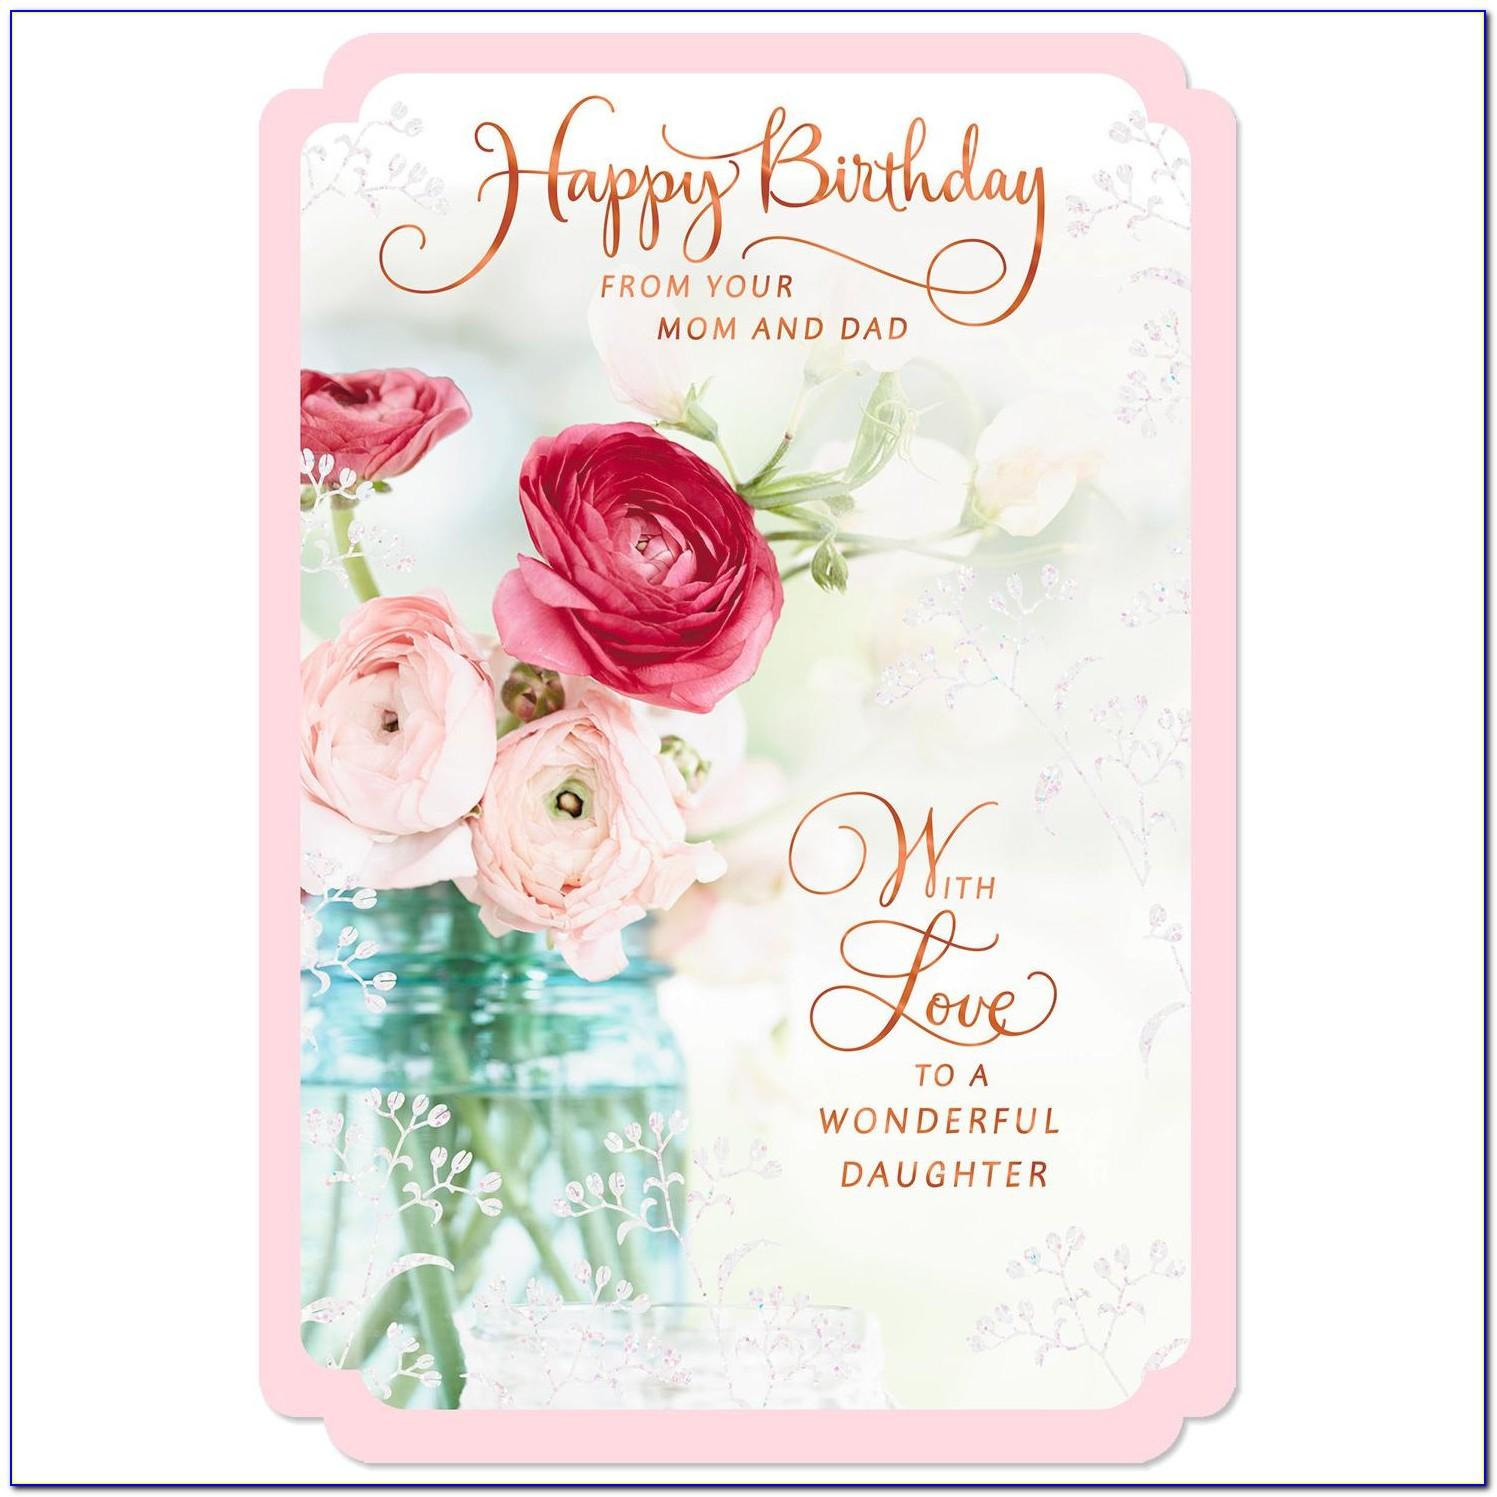 Free Birthday Cards For Daughter From Mom And Dad